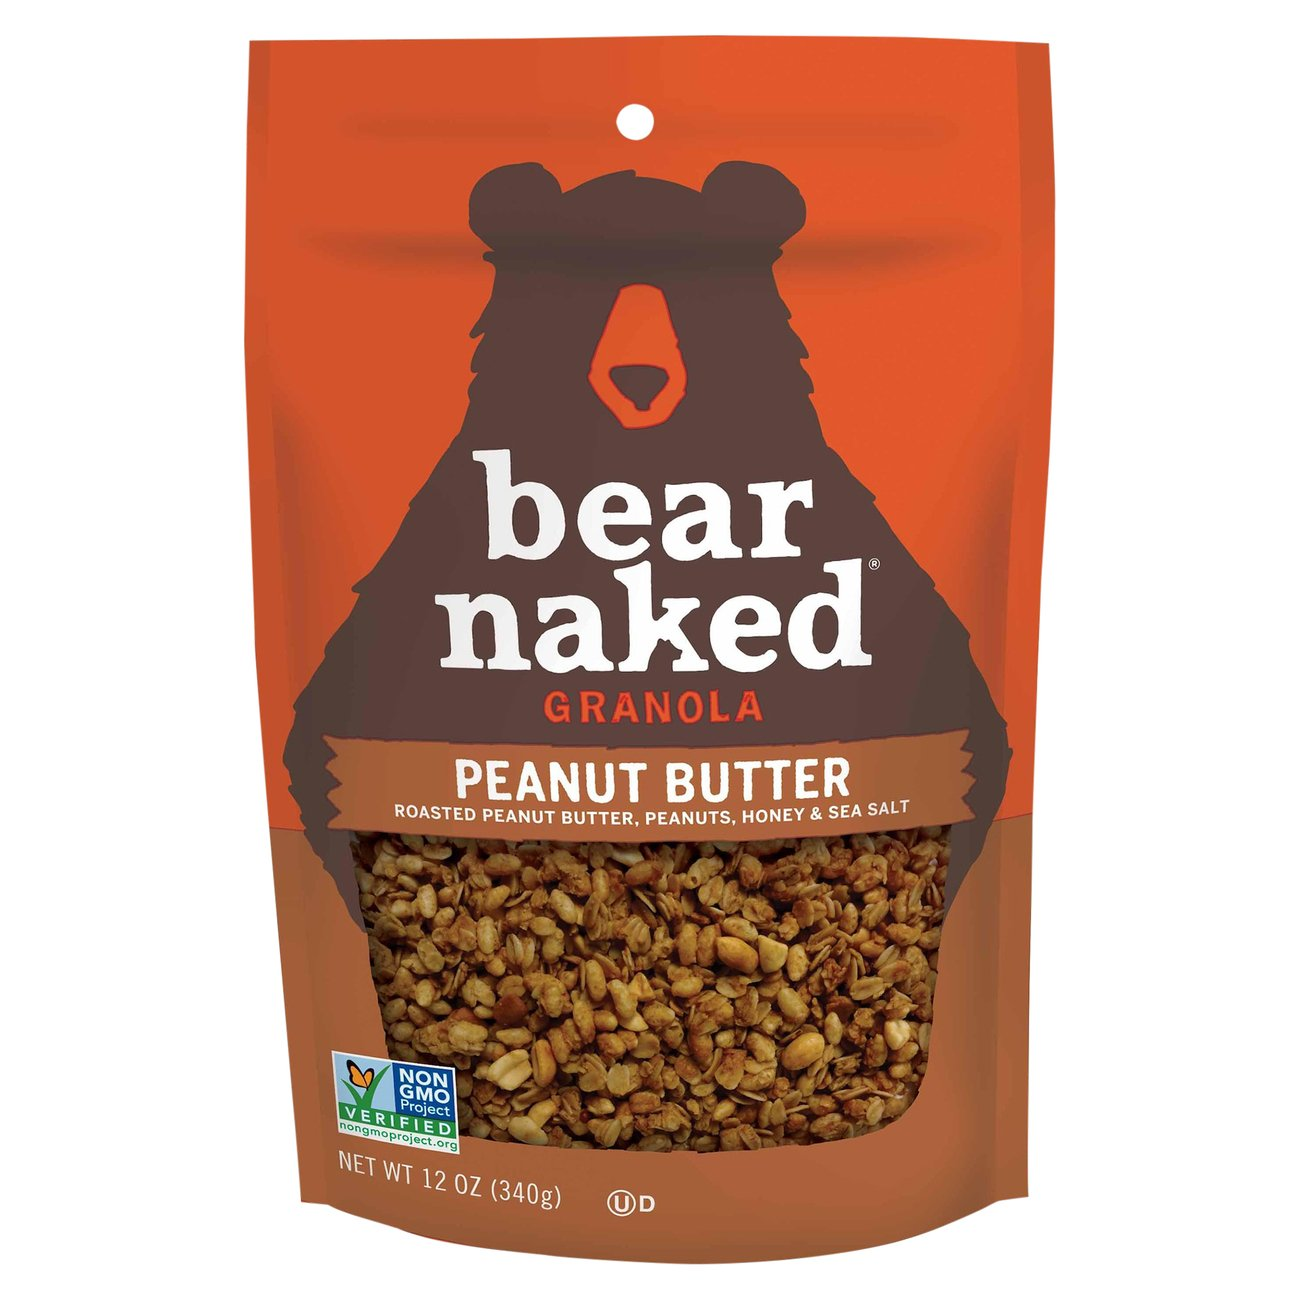 pictures-girls-bear-naked-peanut-butter-and-jelly-granola-science